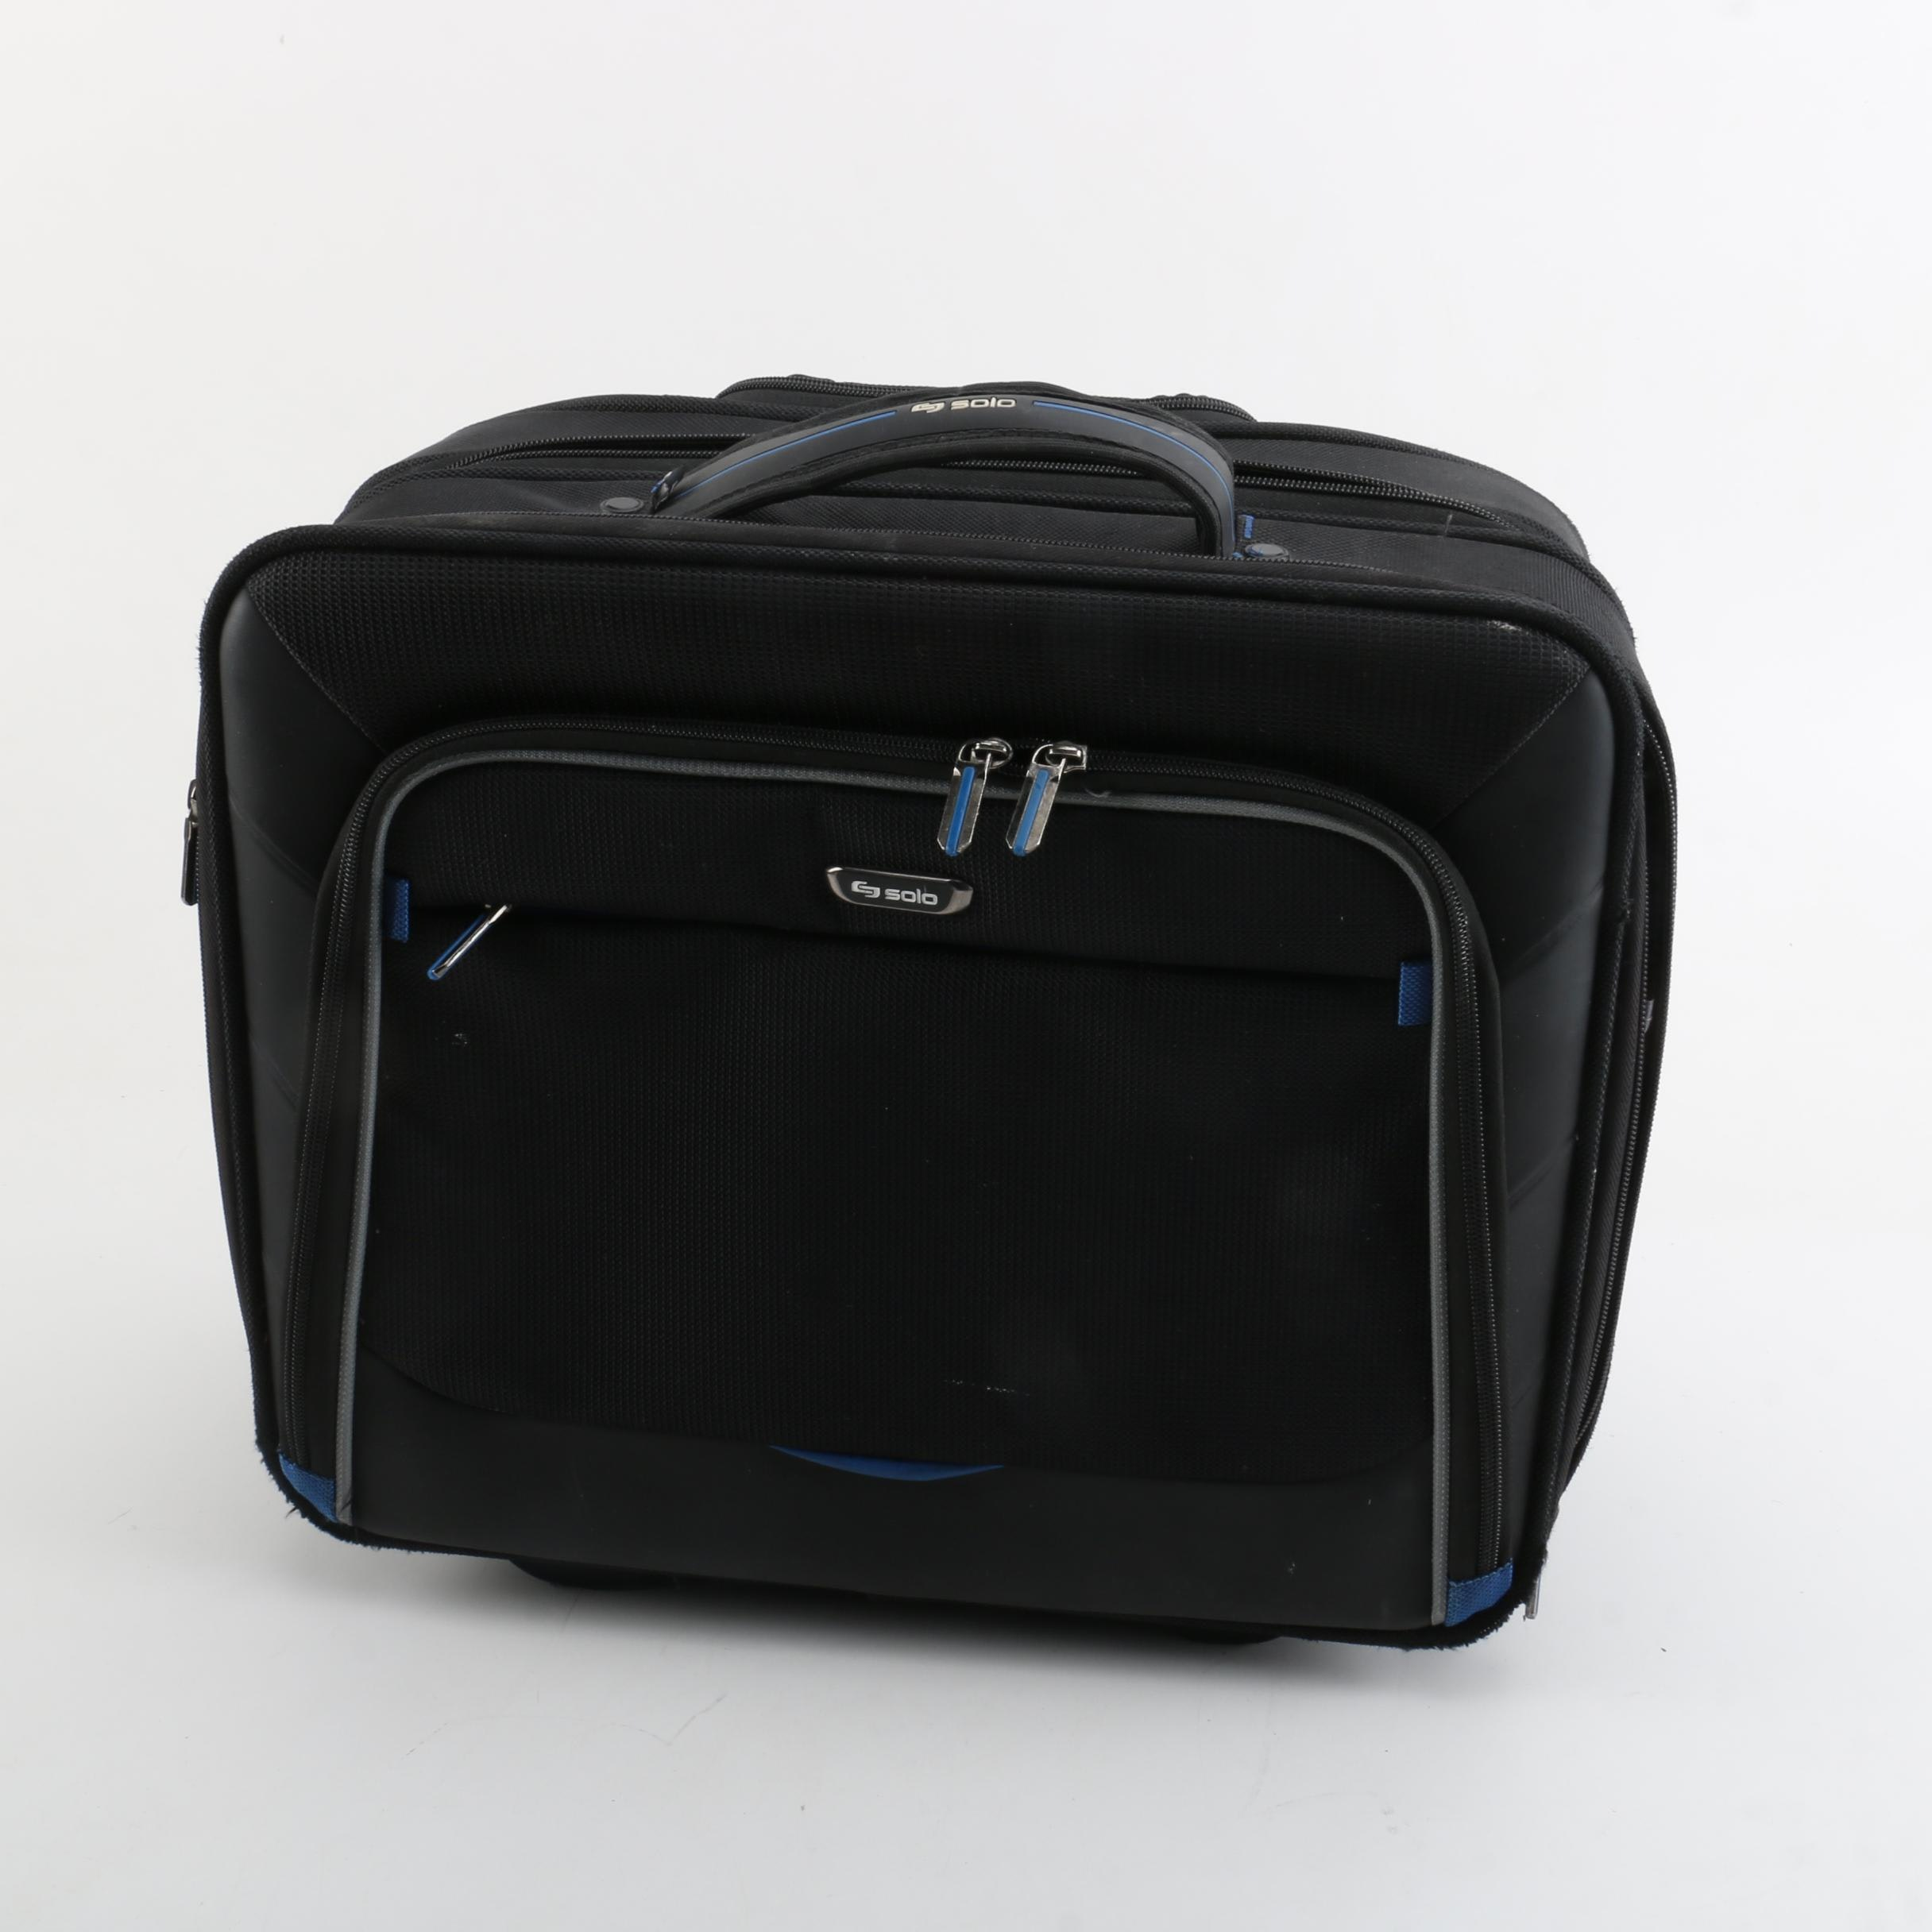 Solo Nylon Carry on Luggage